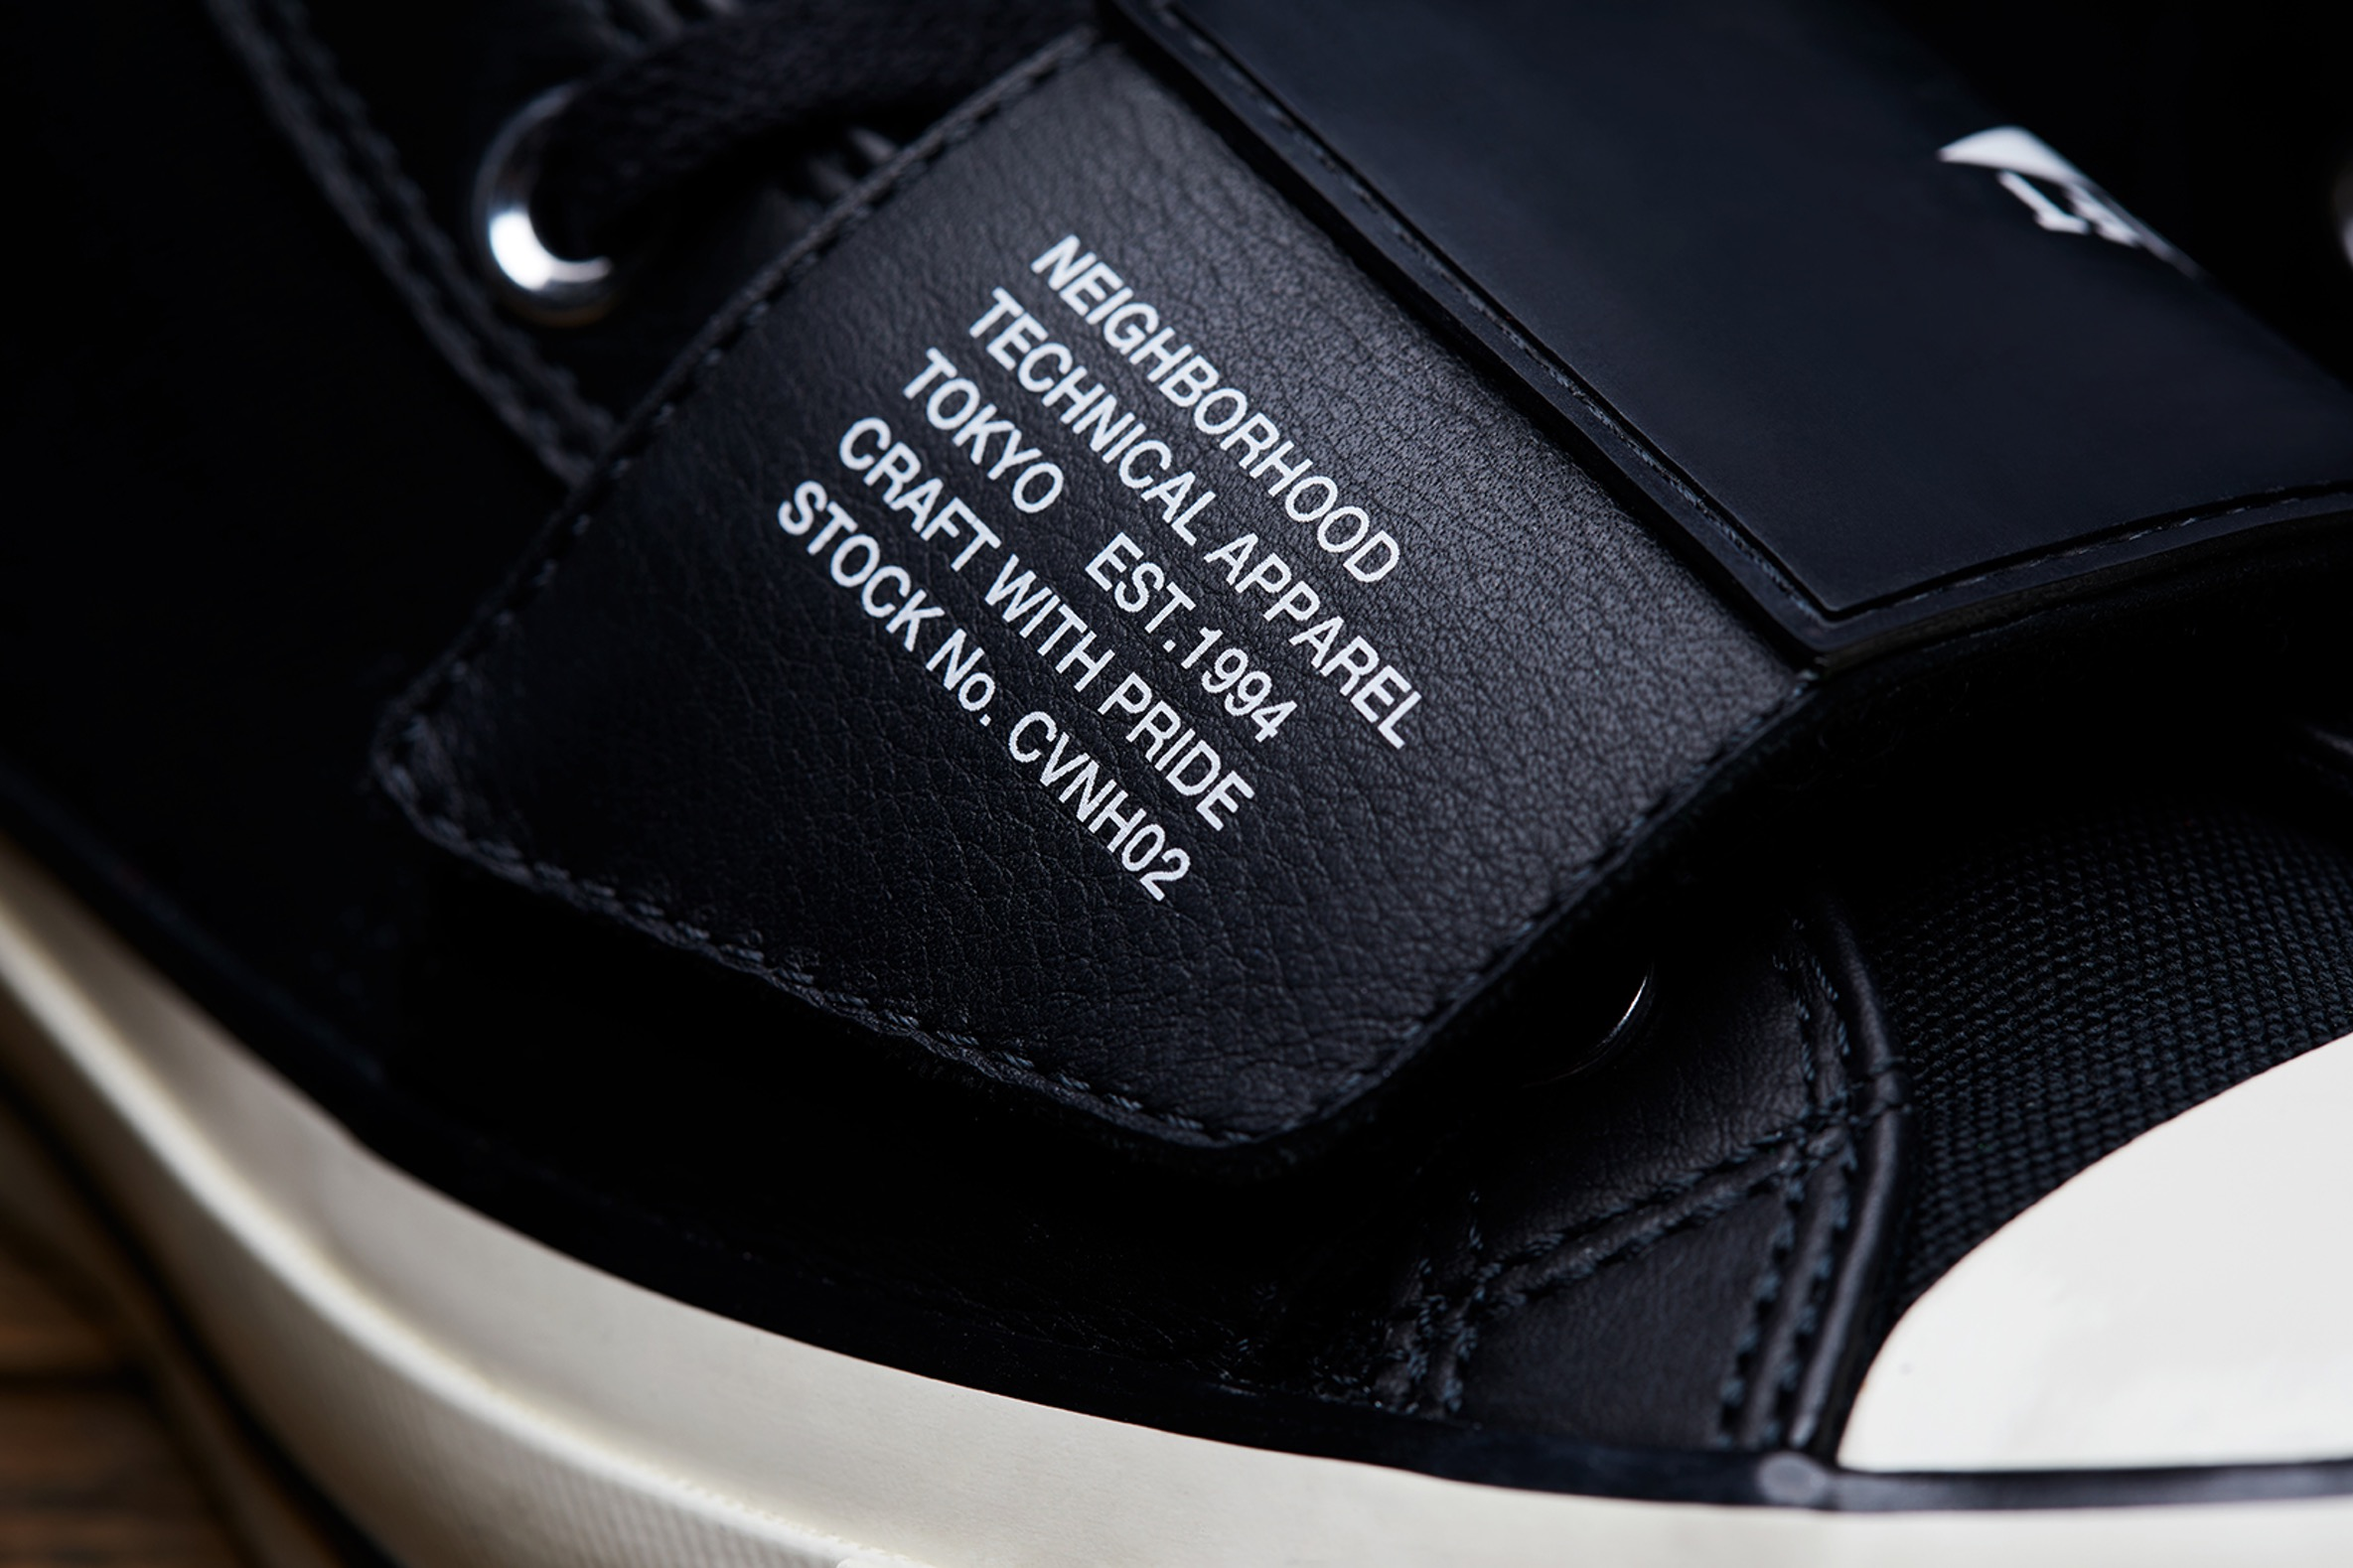 955bf831fbdd Images of Converse x Neighborhood Collaboration Teased